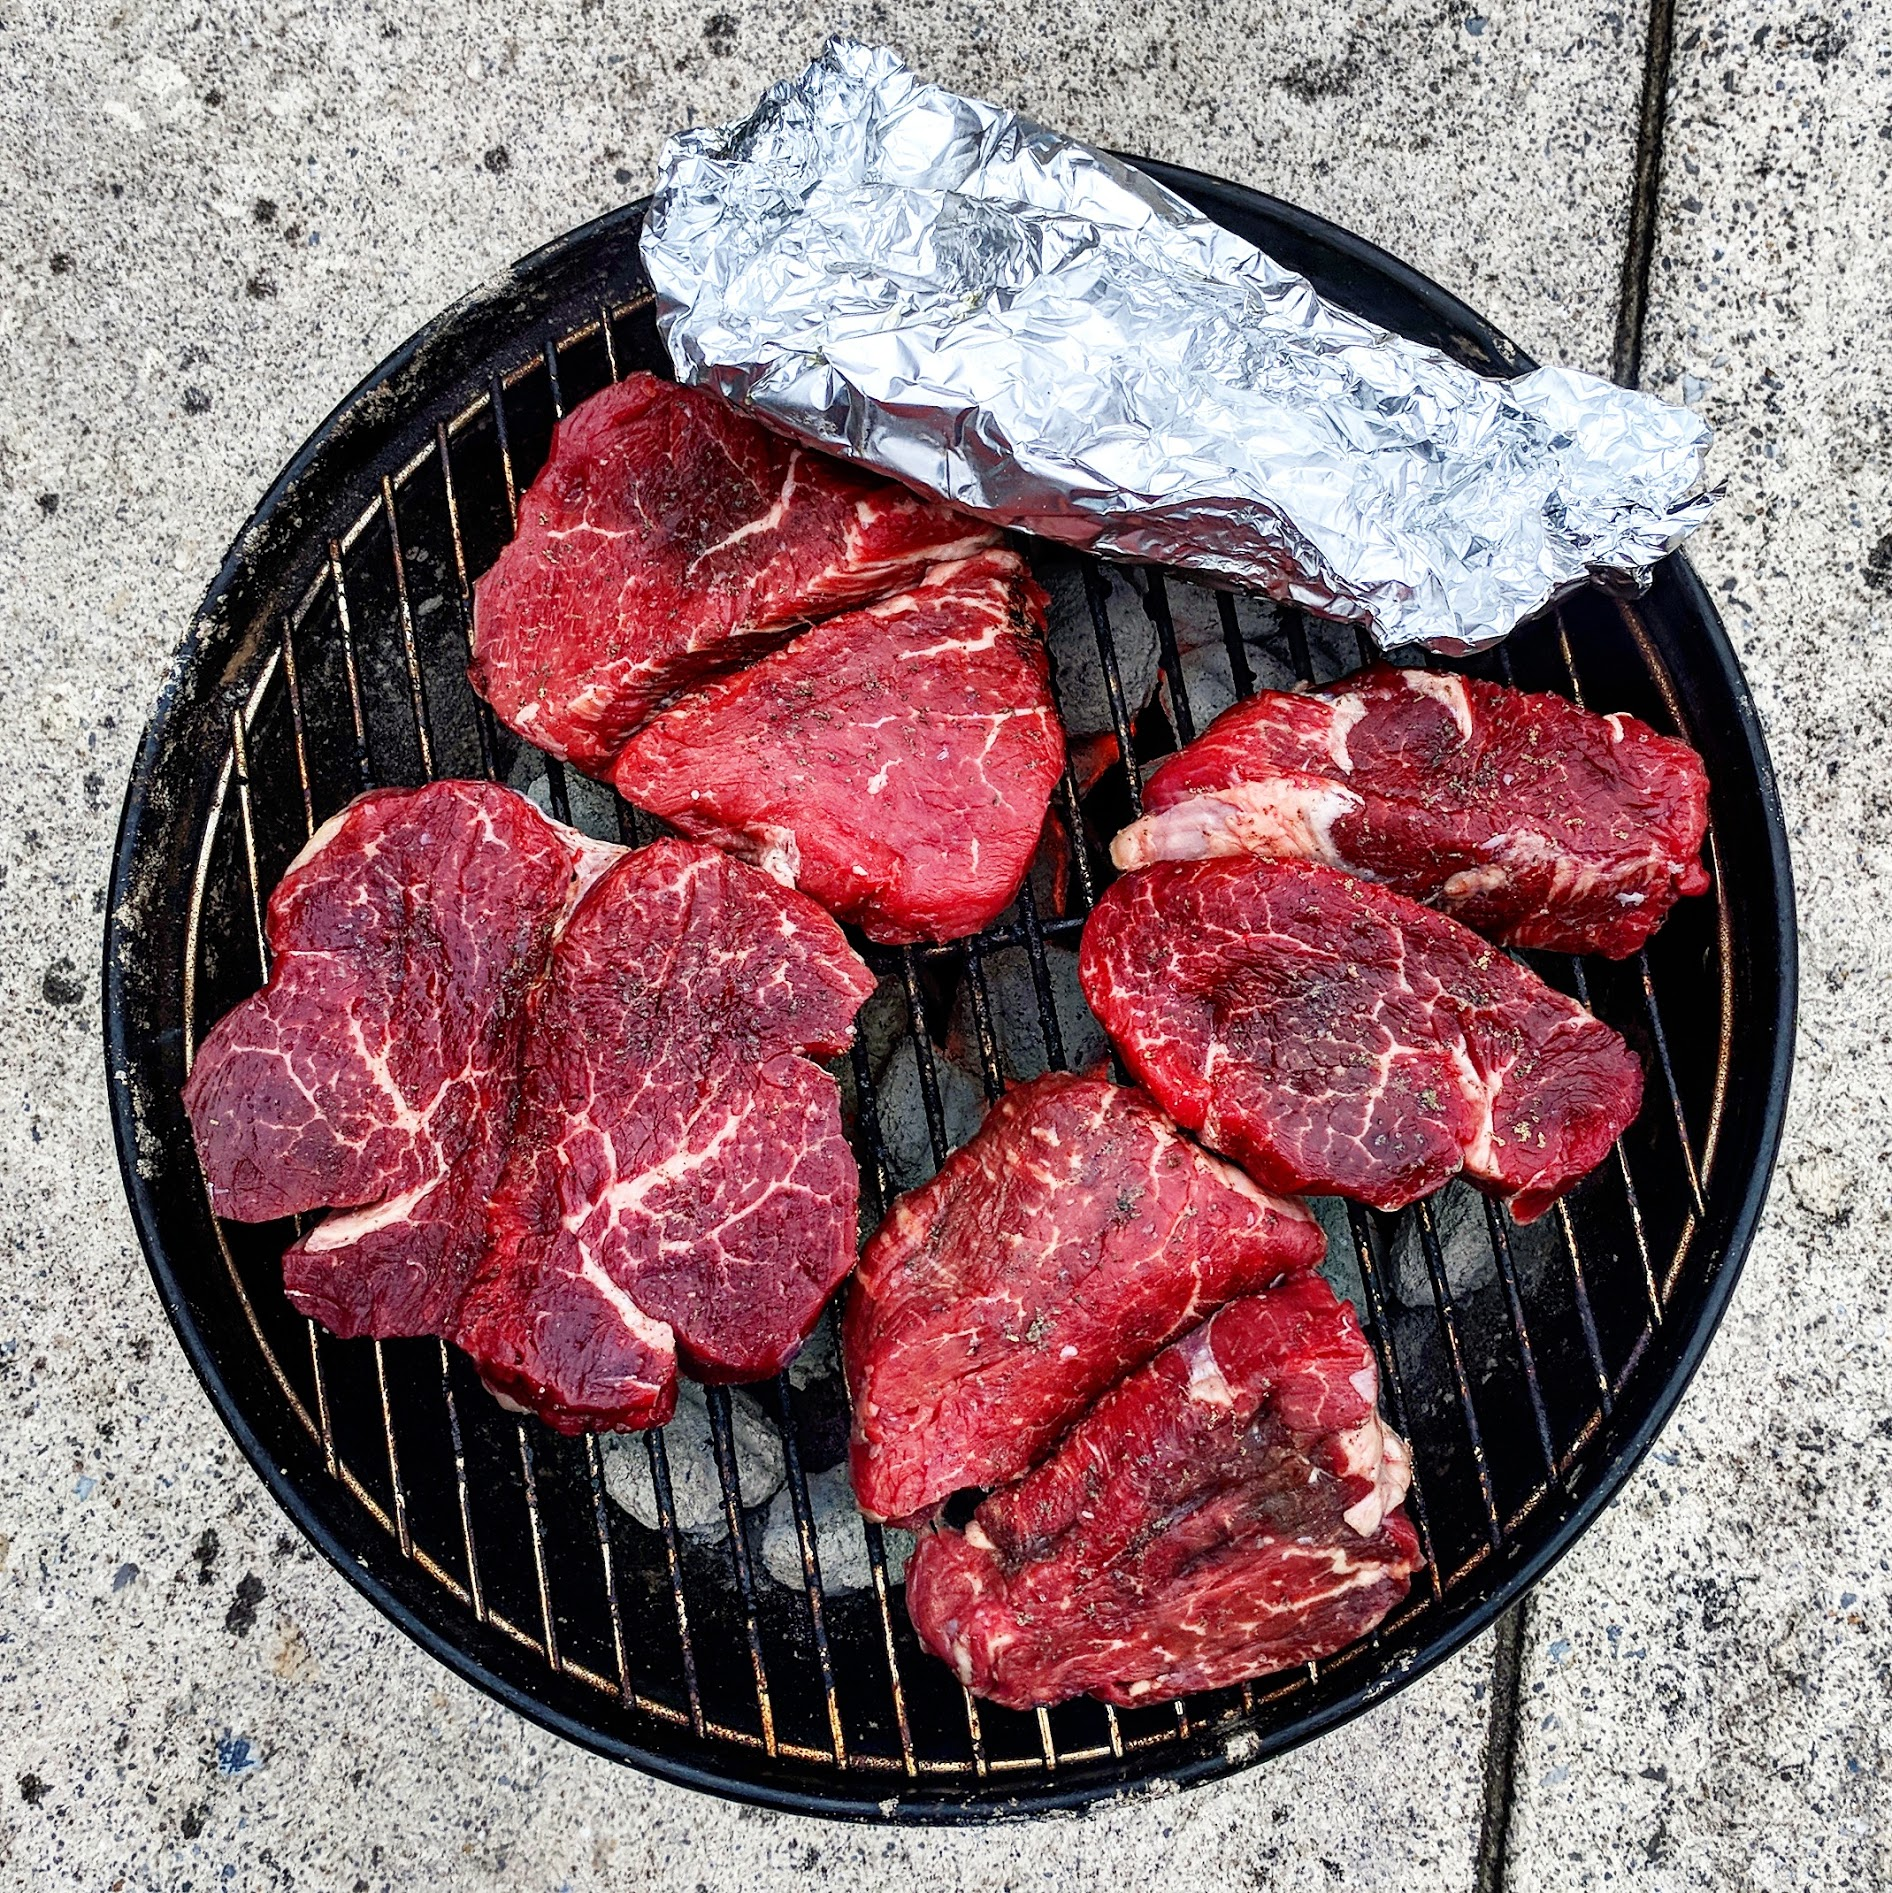 How to grill ribeye steak on a gas grill. - Ribeye steaks are such flavorful cuts of meat because of their marbling (fat content). The more marbling, the higher the USDA grades the steak. So, what's it take to grill an amazing ribeye steak on a gas grill? Let's find out below.